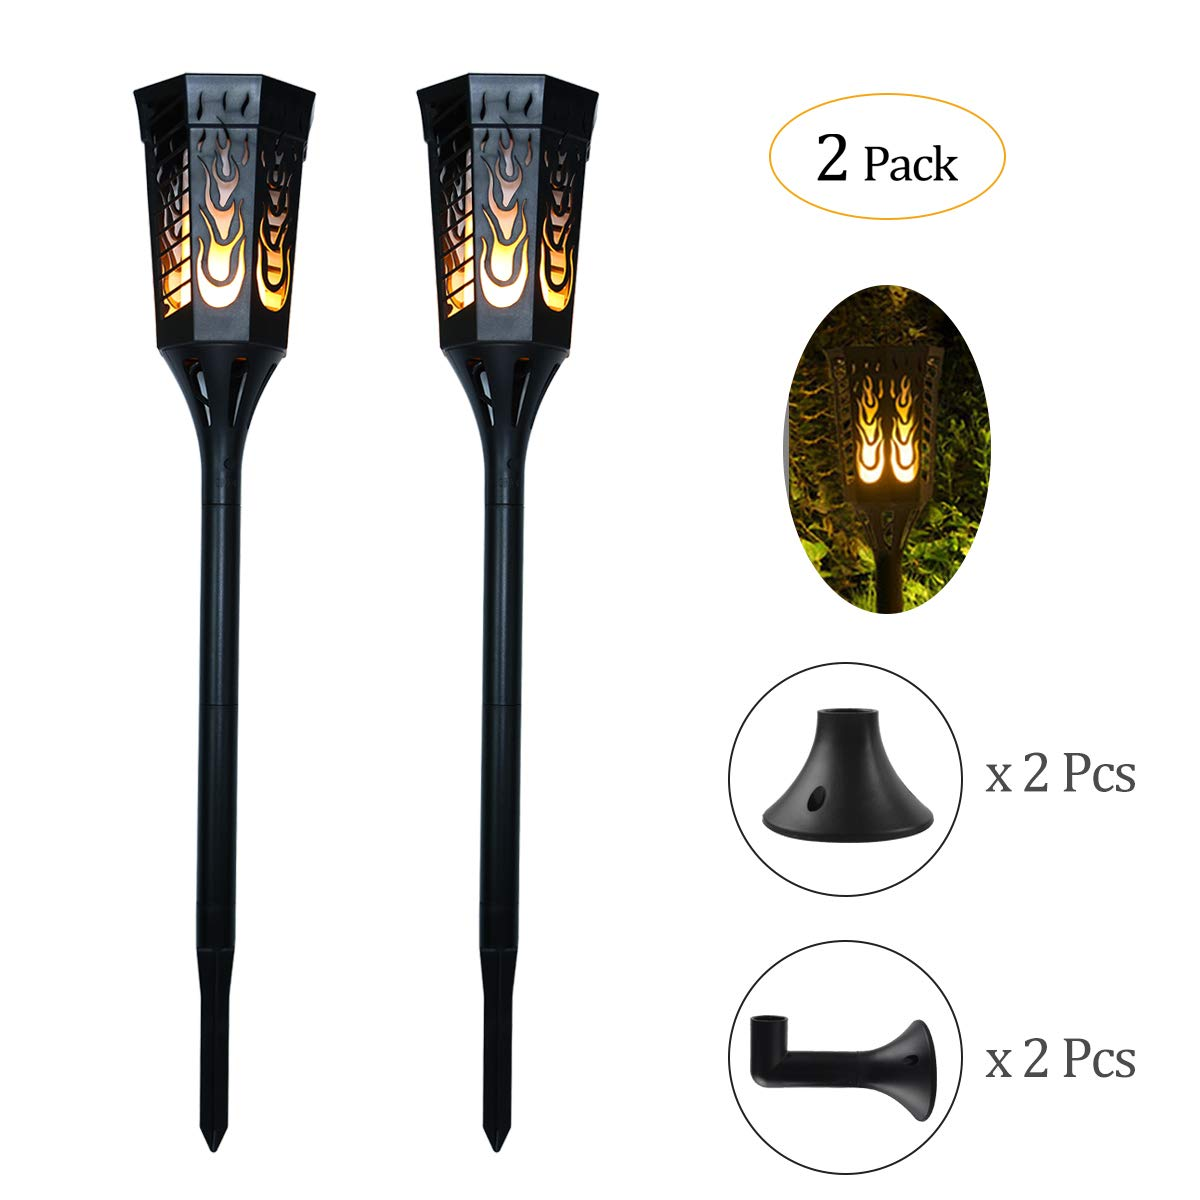 Ideapro Solar Lights, [Upgraded 2018] Torch 96 LED Solar Powered Flickering Flames Landscape Decoration Lighting Multipurpose Outdoor and Indoor for Wall Mounted Garden Patio Yard Lamp 2 PCS (Style 1)